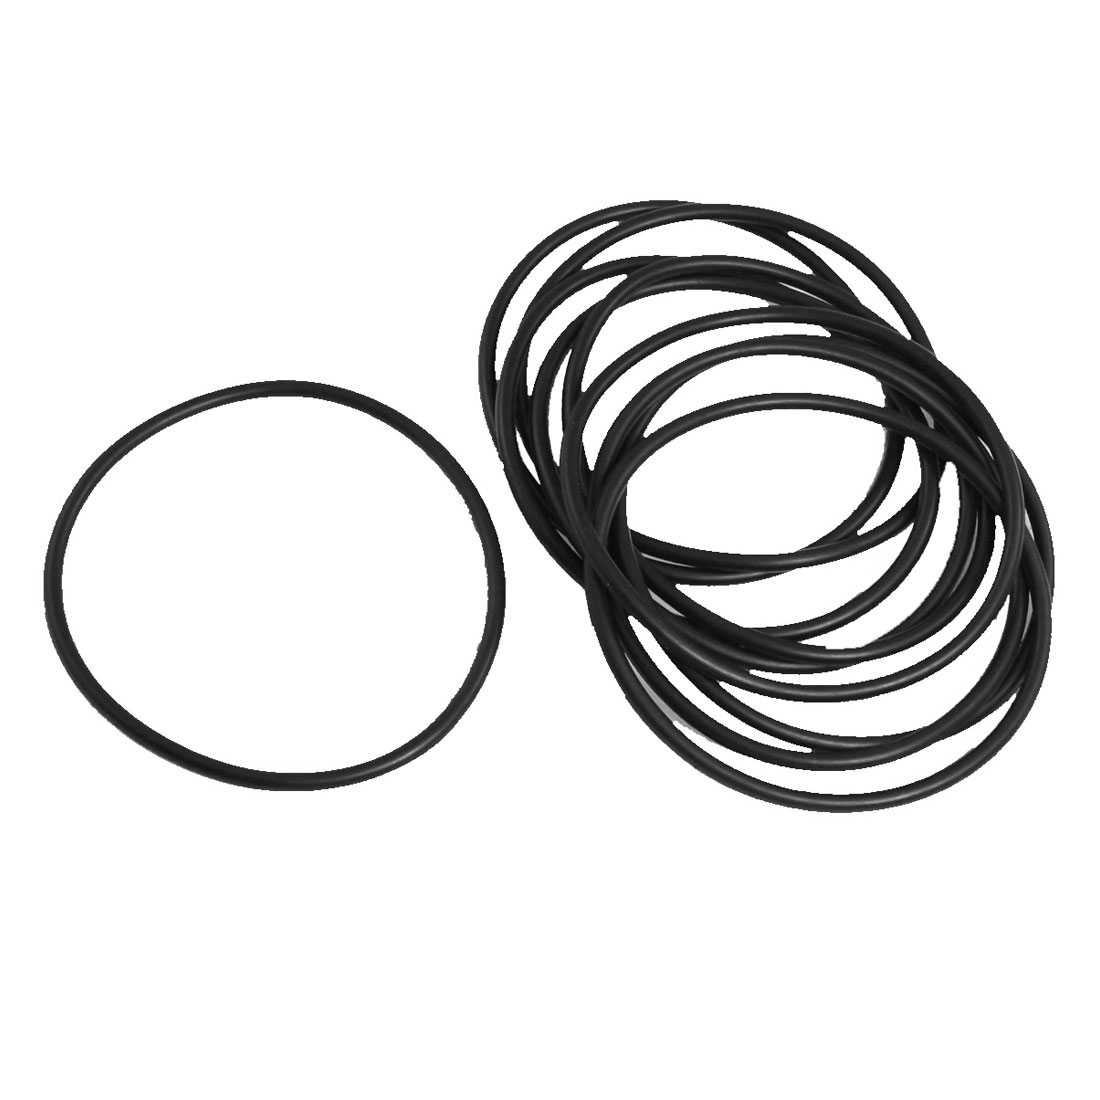 10 Pcs 70mm x 3mm x 64mm Mechanical Black NBR O Rings Oil Seal Washers